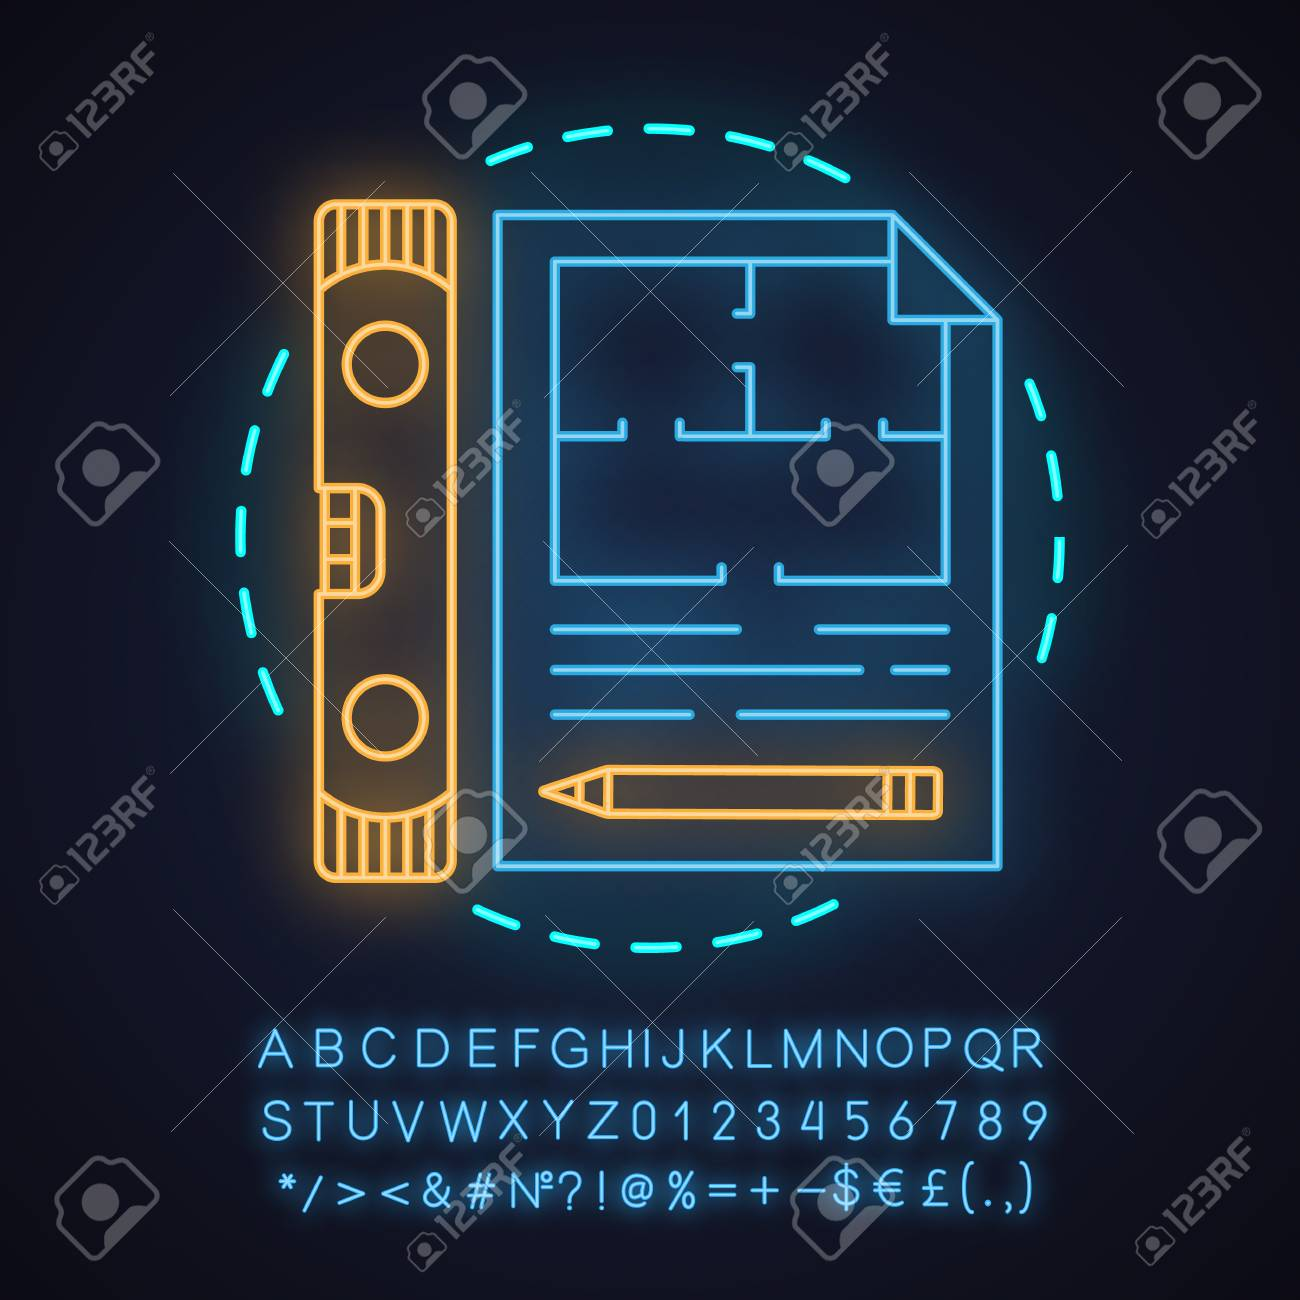 hight resolution of building project neon light concept icon blueprint idea floor plan glowing sign with